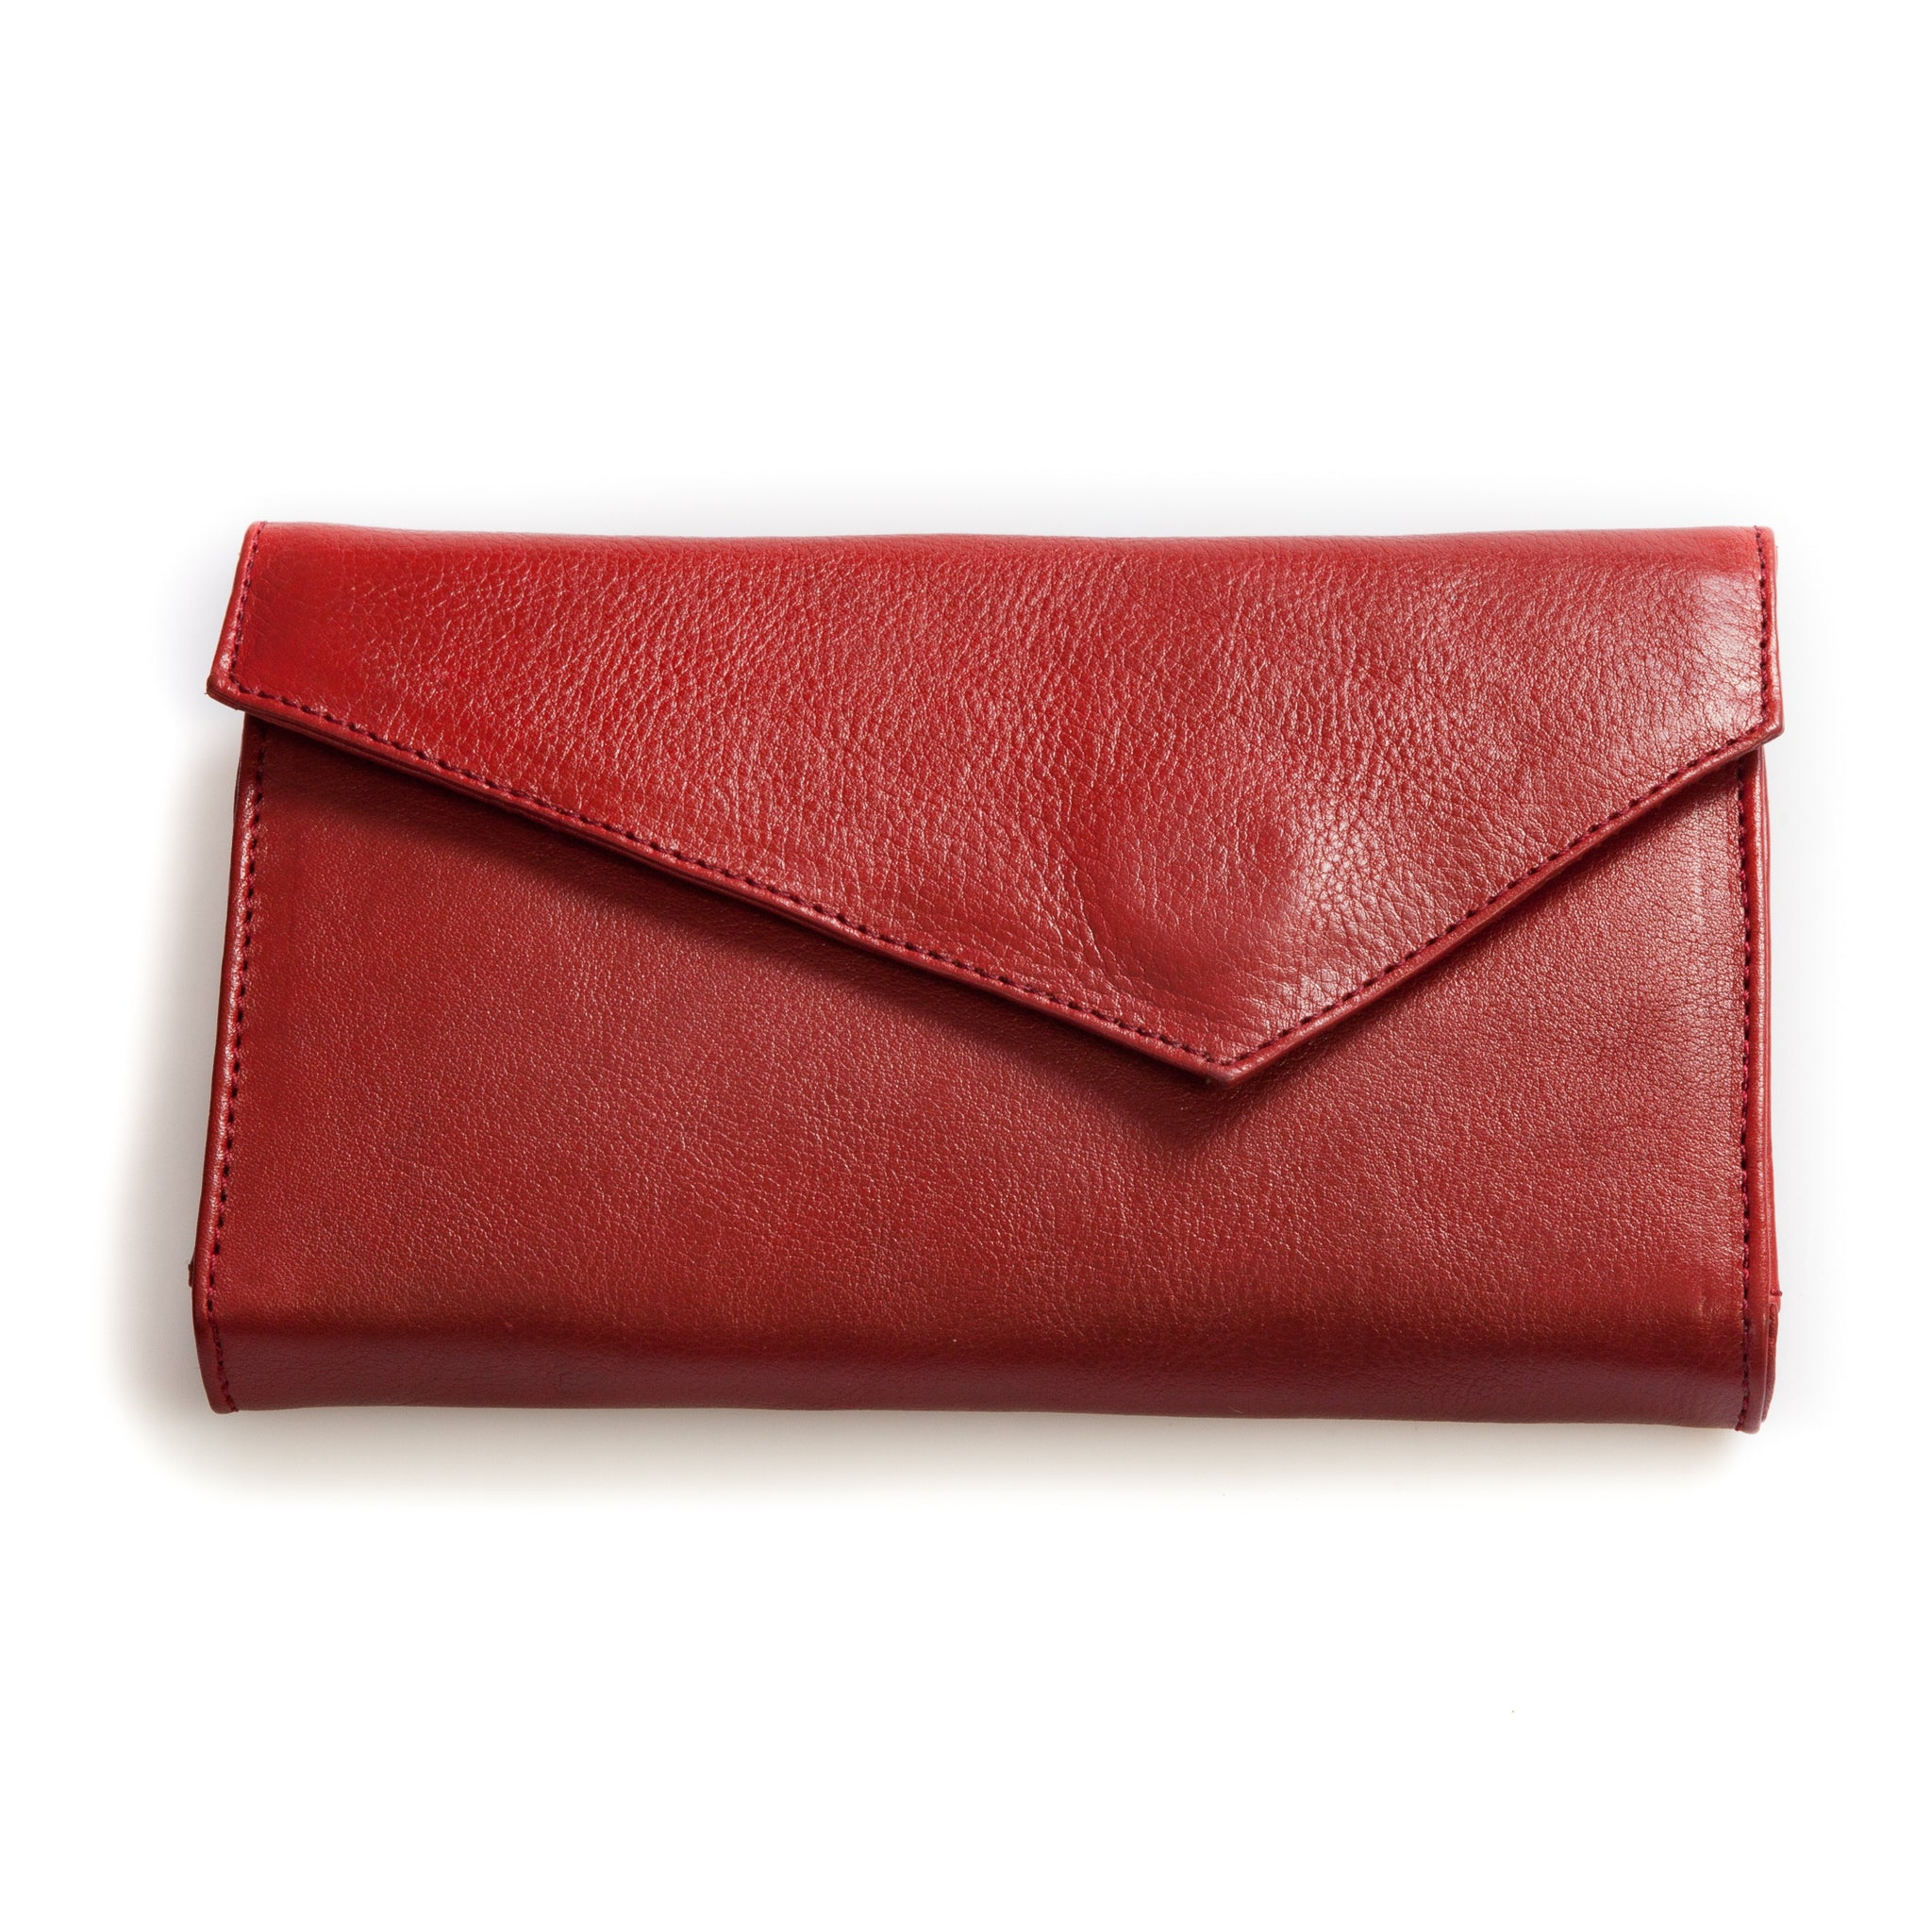 First of June, Lovina, wallet, leather, red leather, vegetable tanned leather